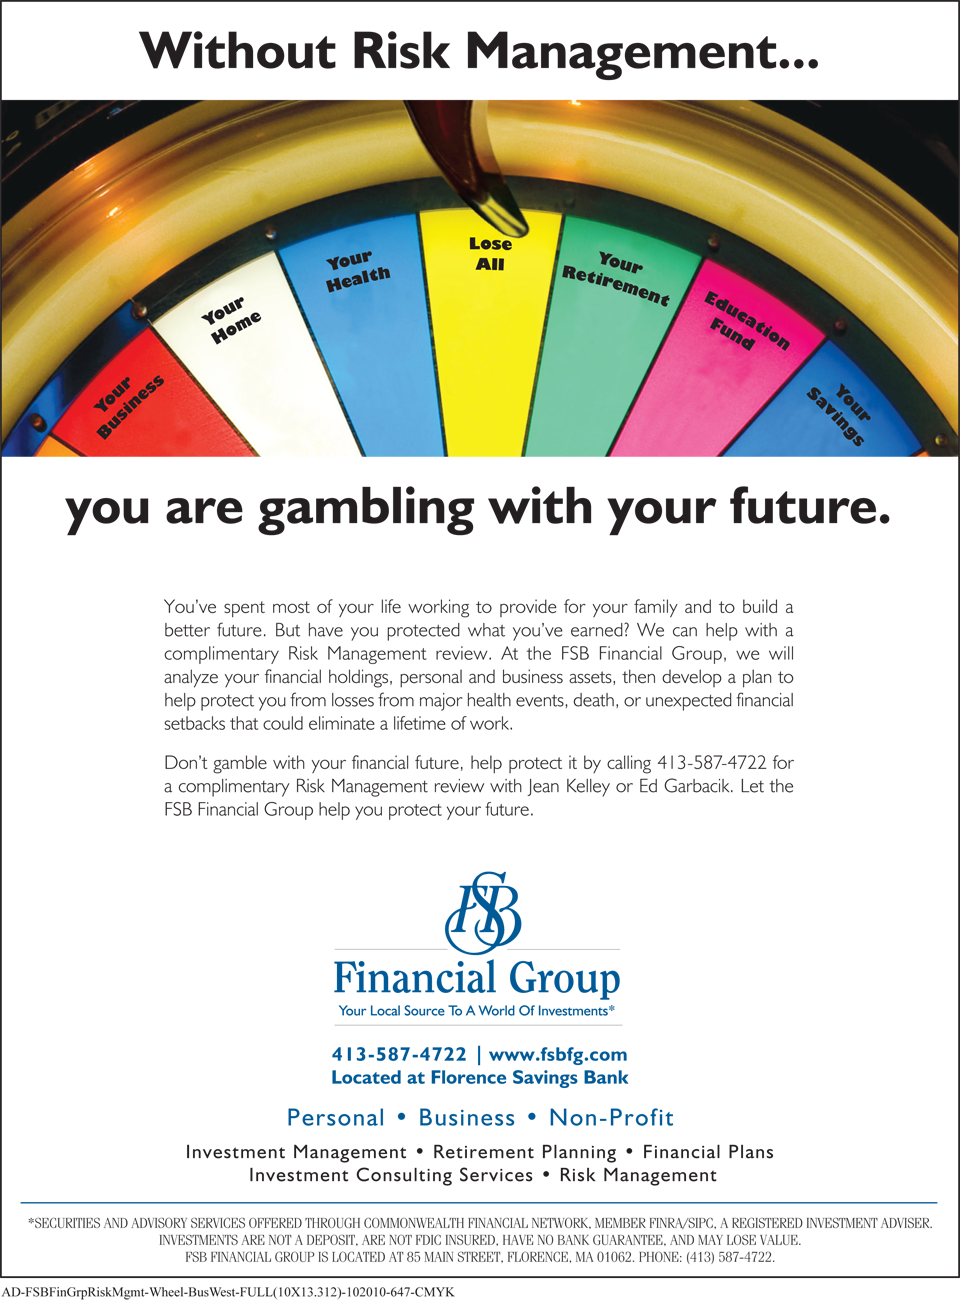 FSBFG-AD_You are gambling...